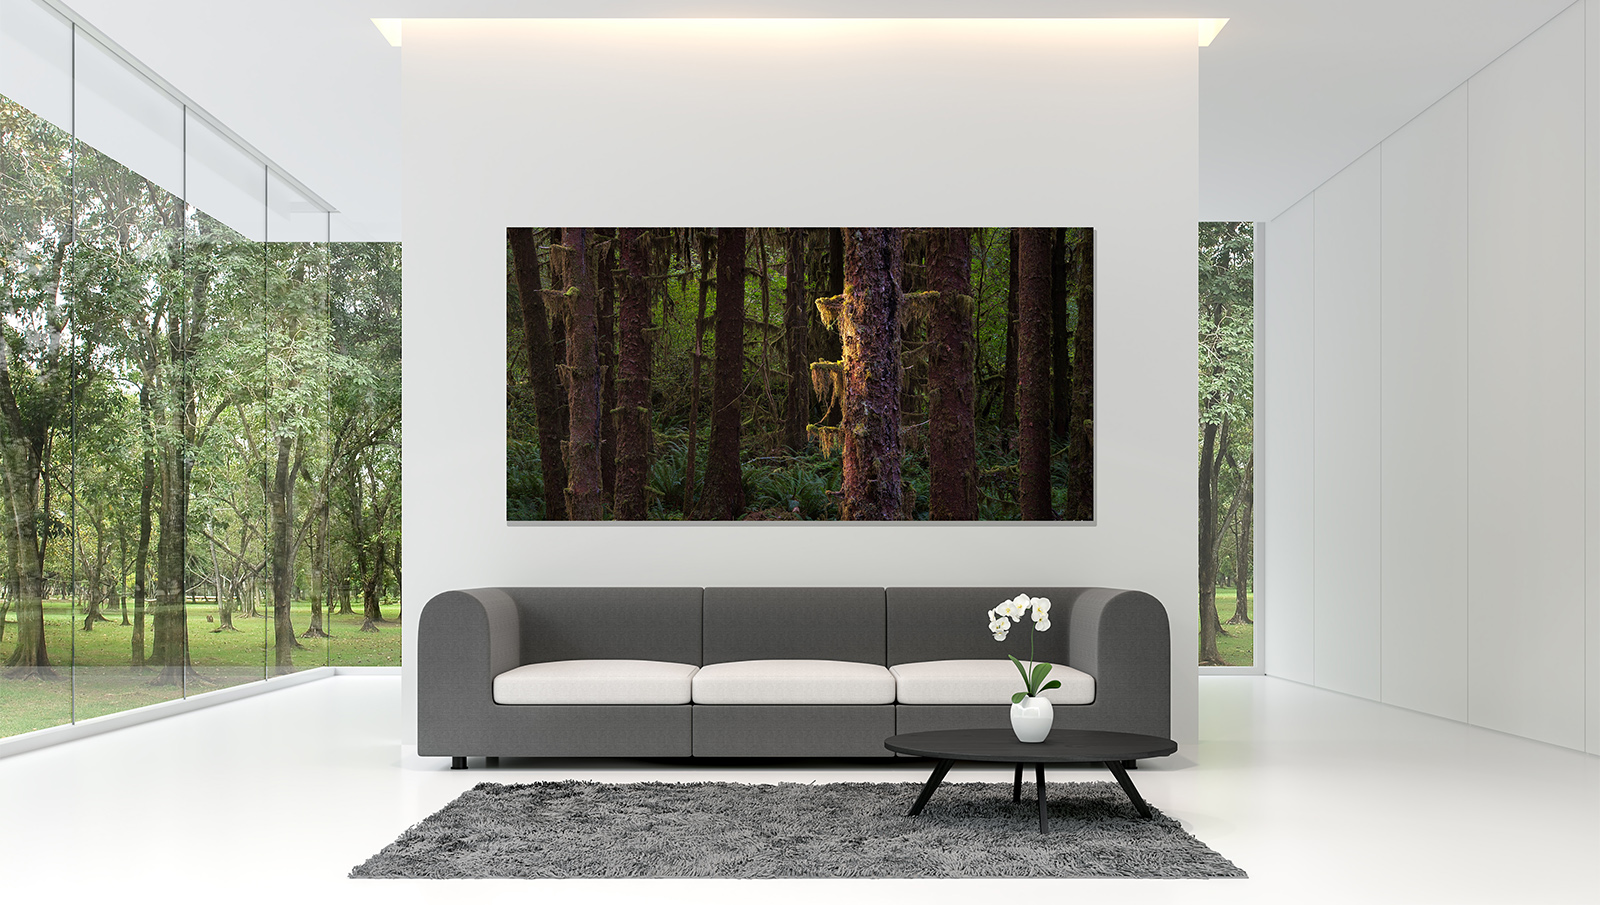 Minimal living room with white backdrop 3d rendering image.A whi